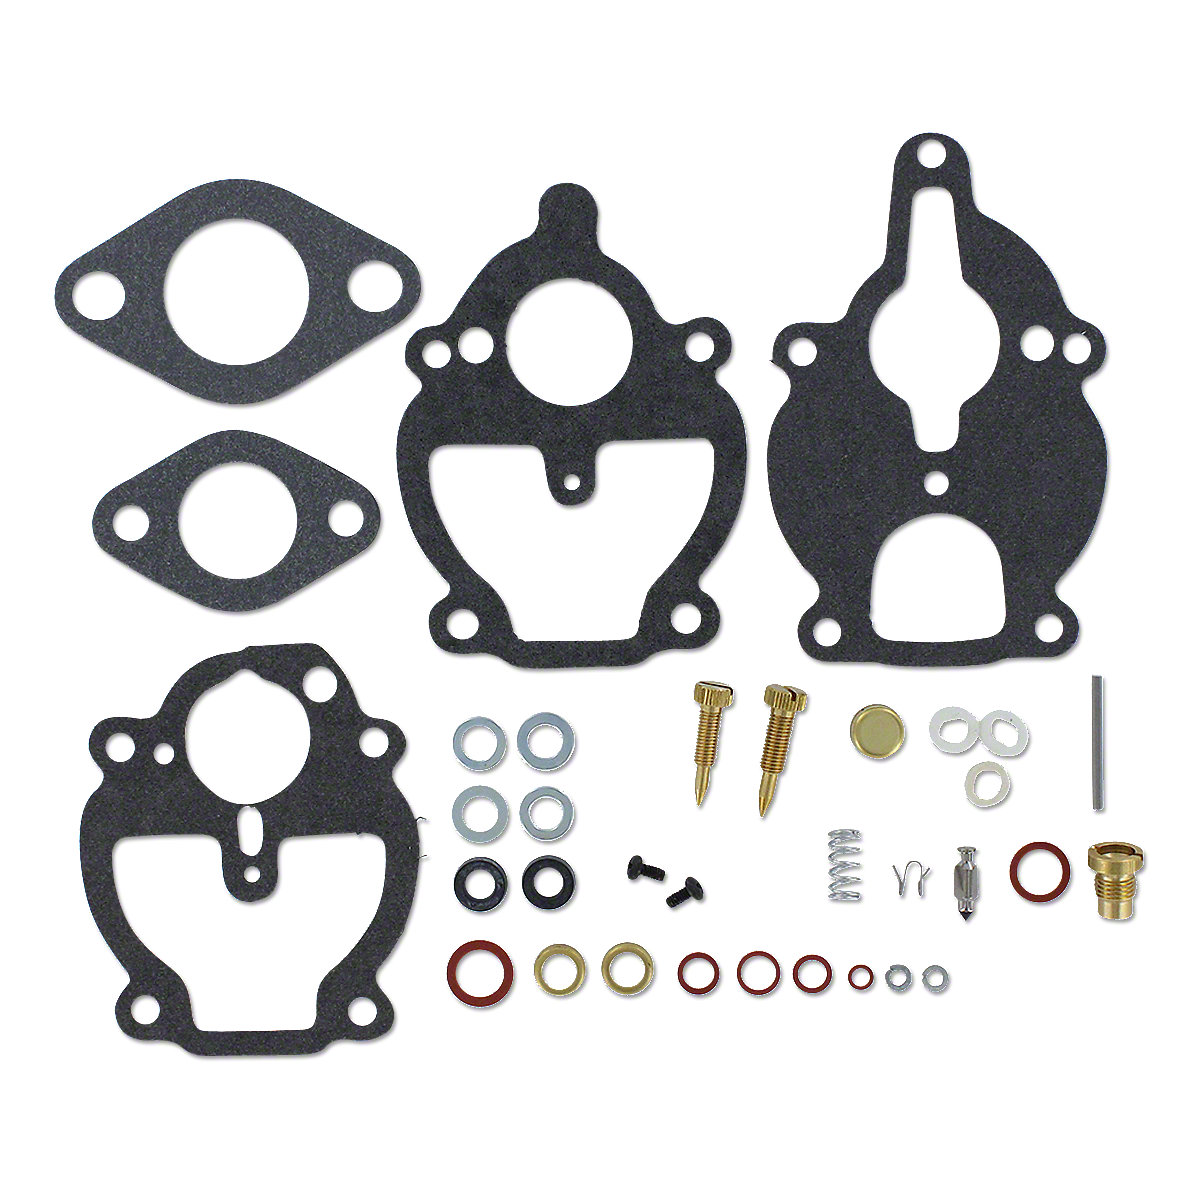 Zenith Economy Carburetor Kit For Massey Ferguson: 135, 230, TE20, TO20, TO30.